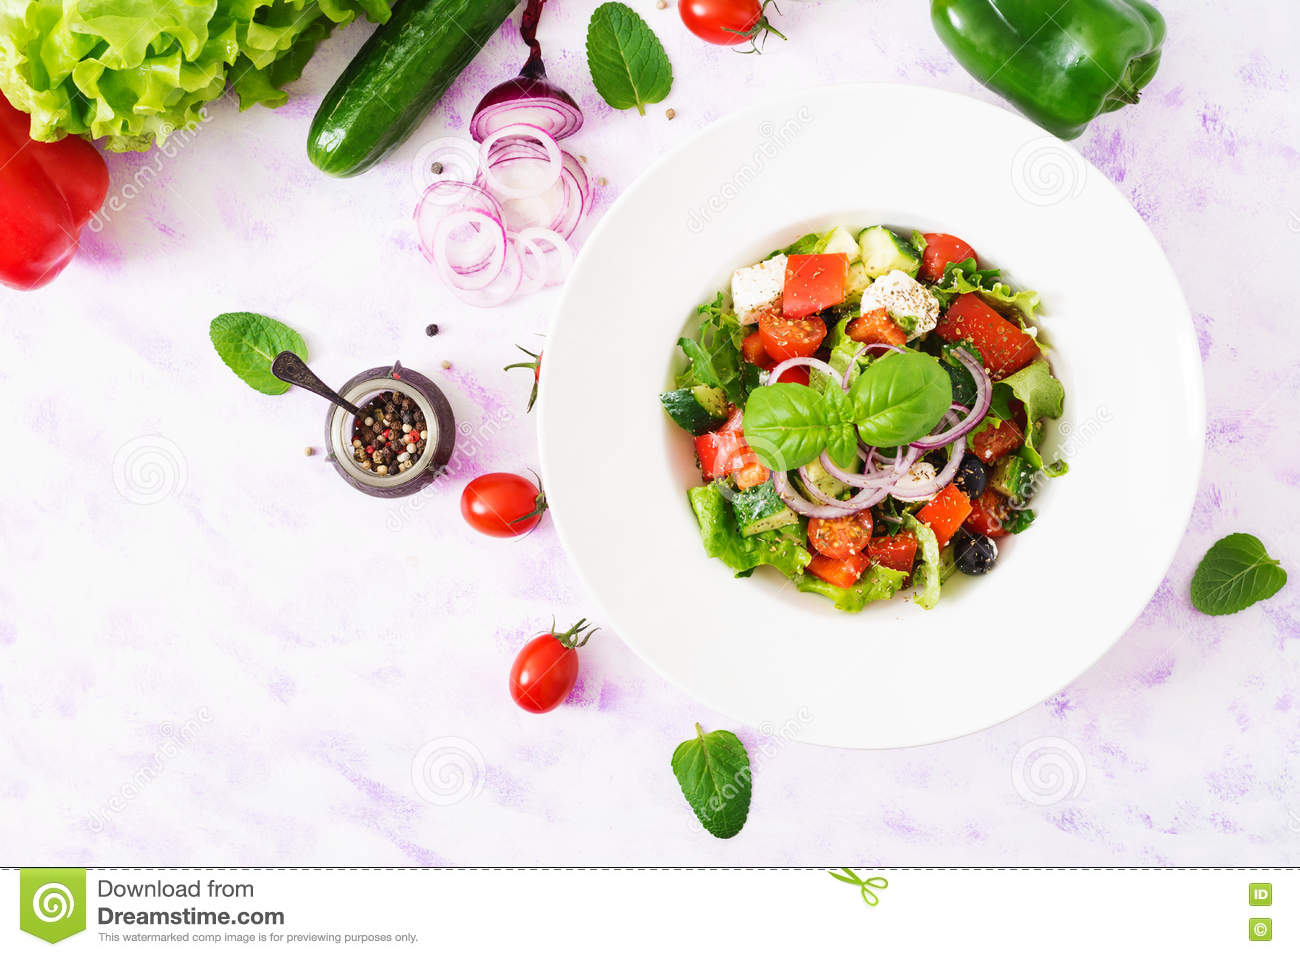 Cucumber with Feta and Herb Salad